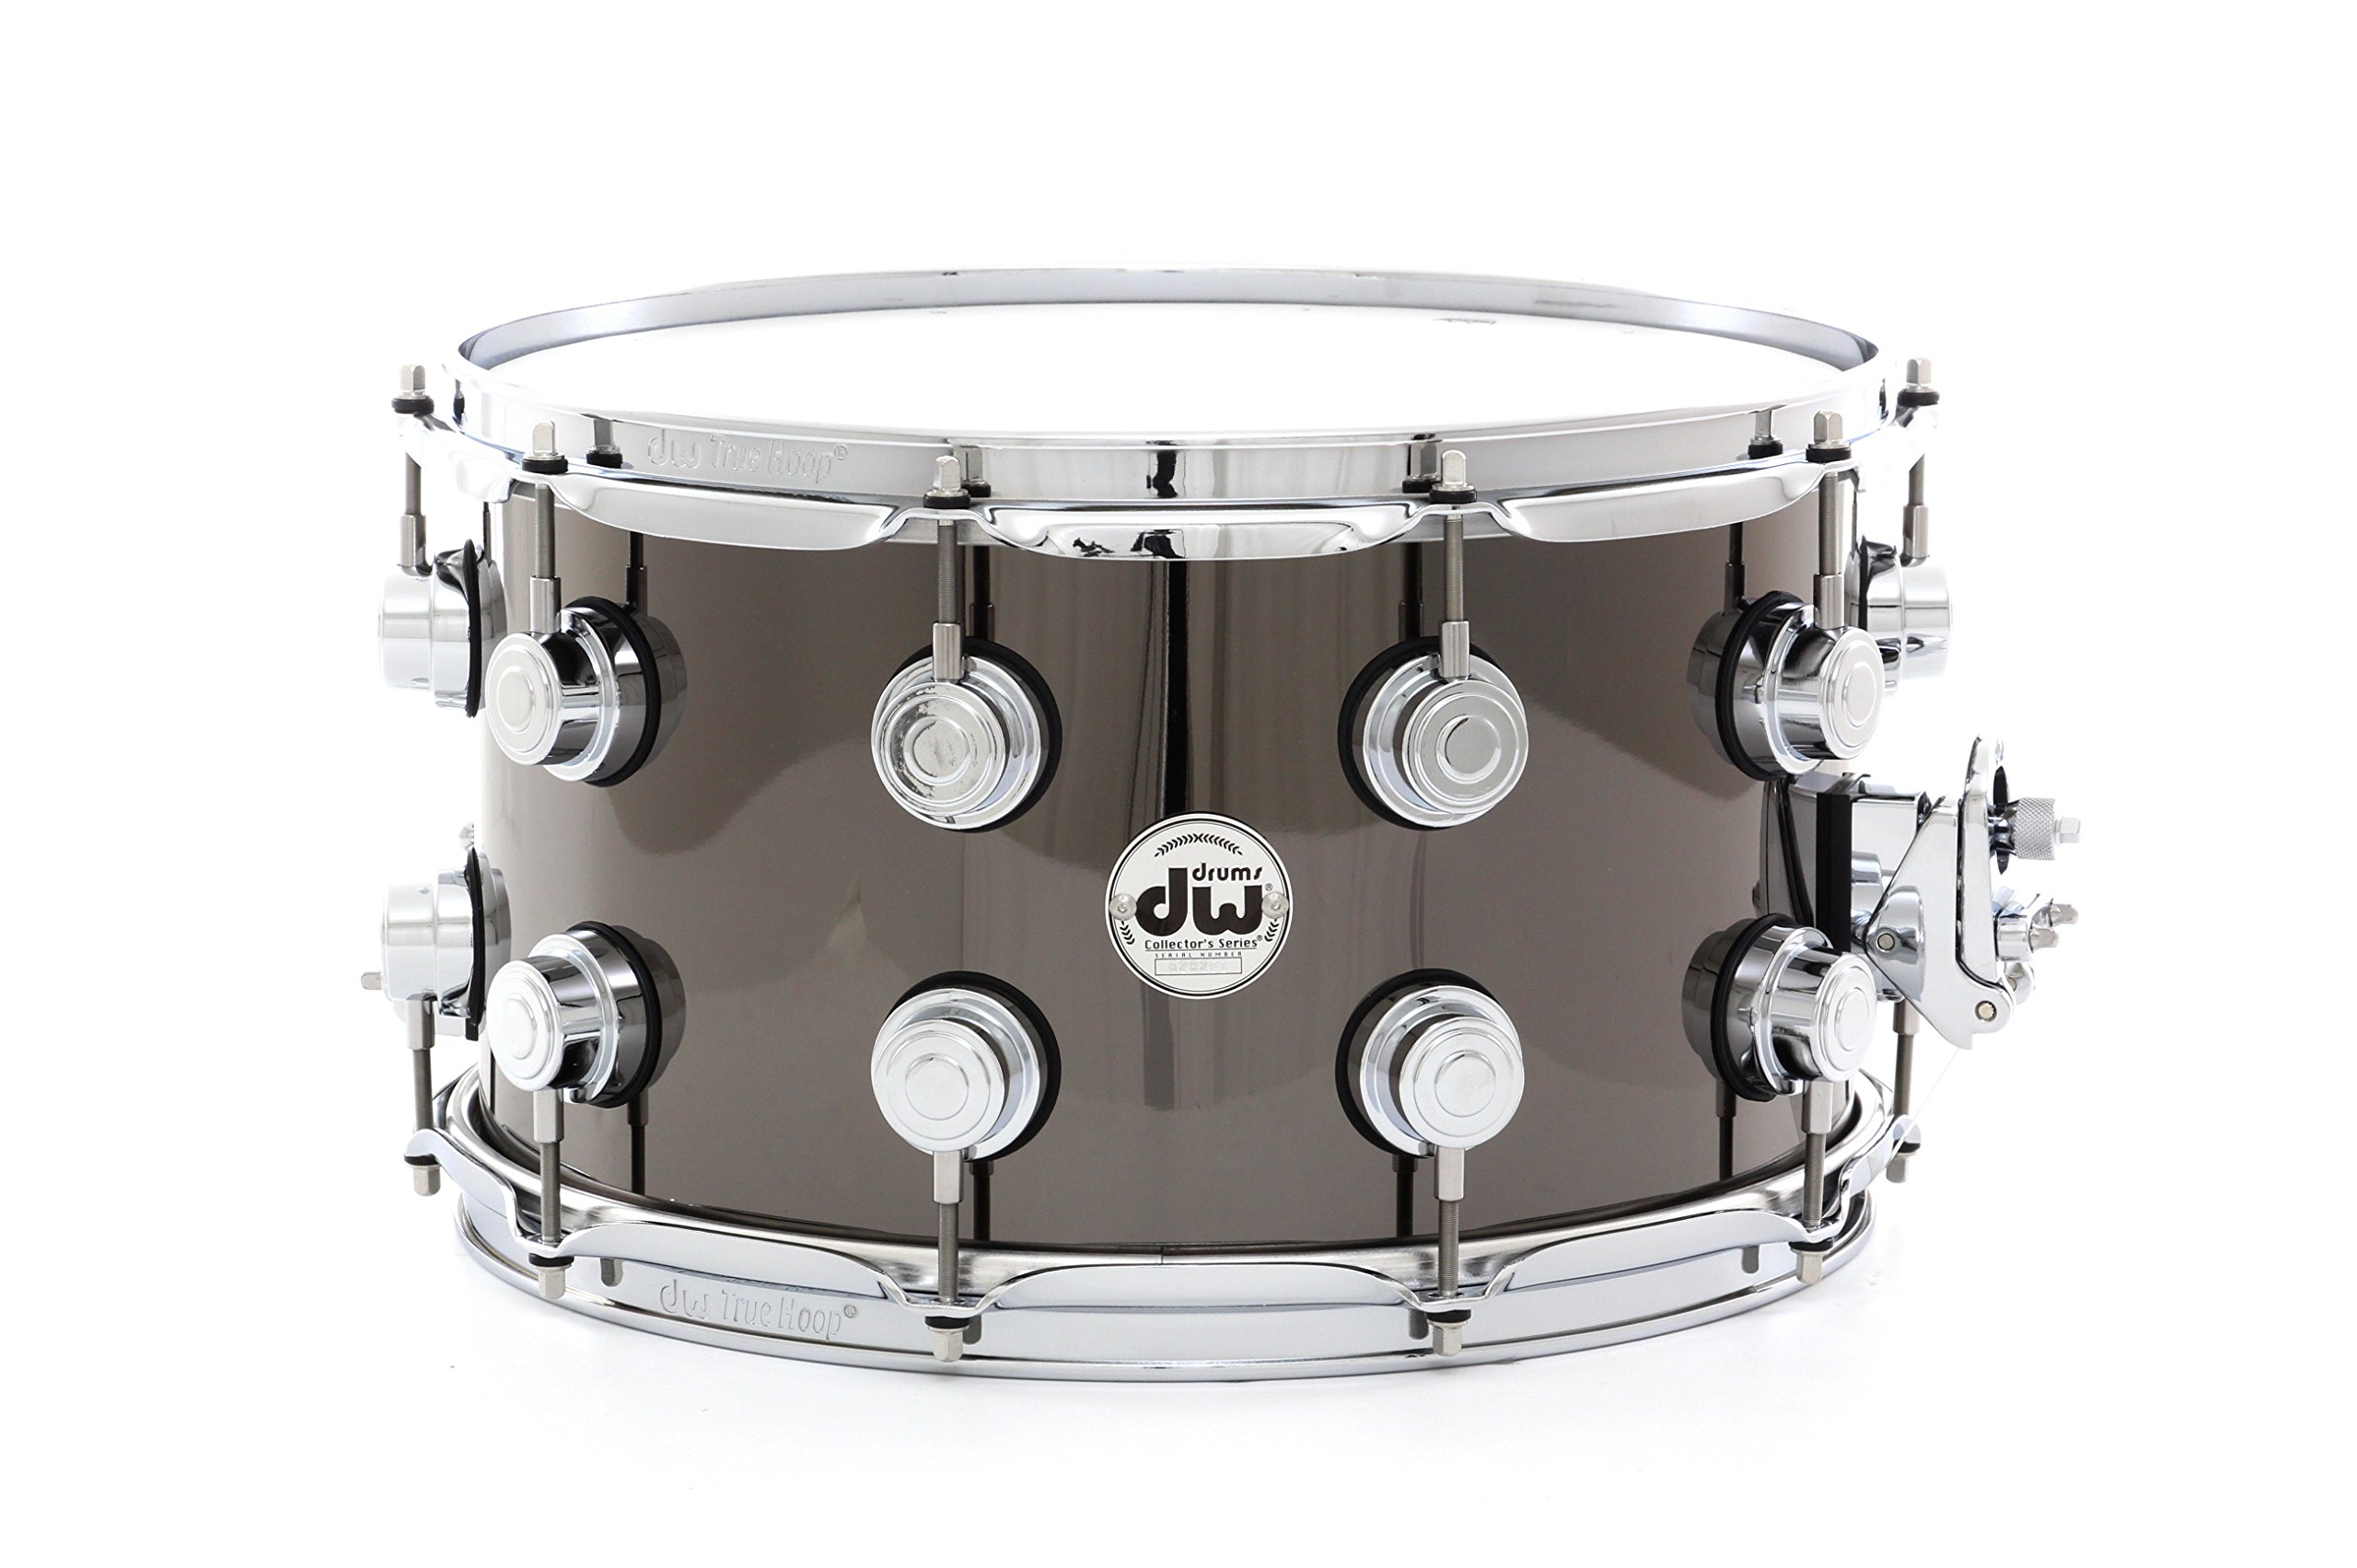 DW Collector's Series Metal Snare Drum 14 x 8 in. Black Nickel Over Brass with Chrome Hardware